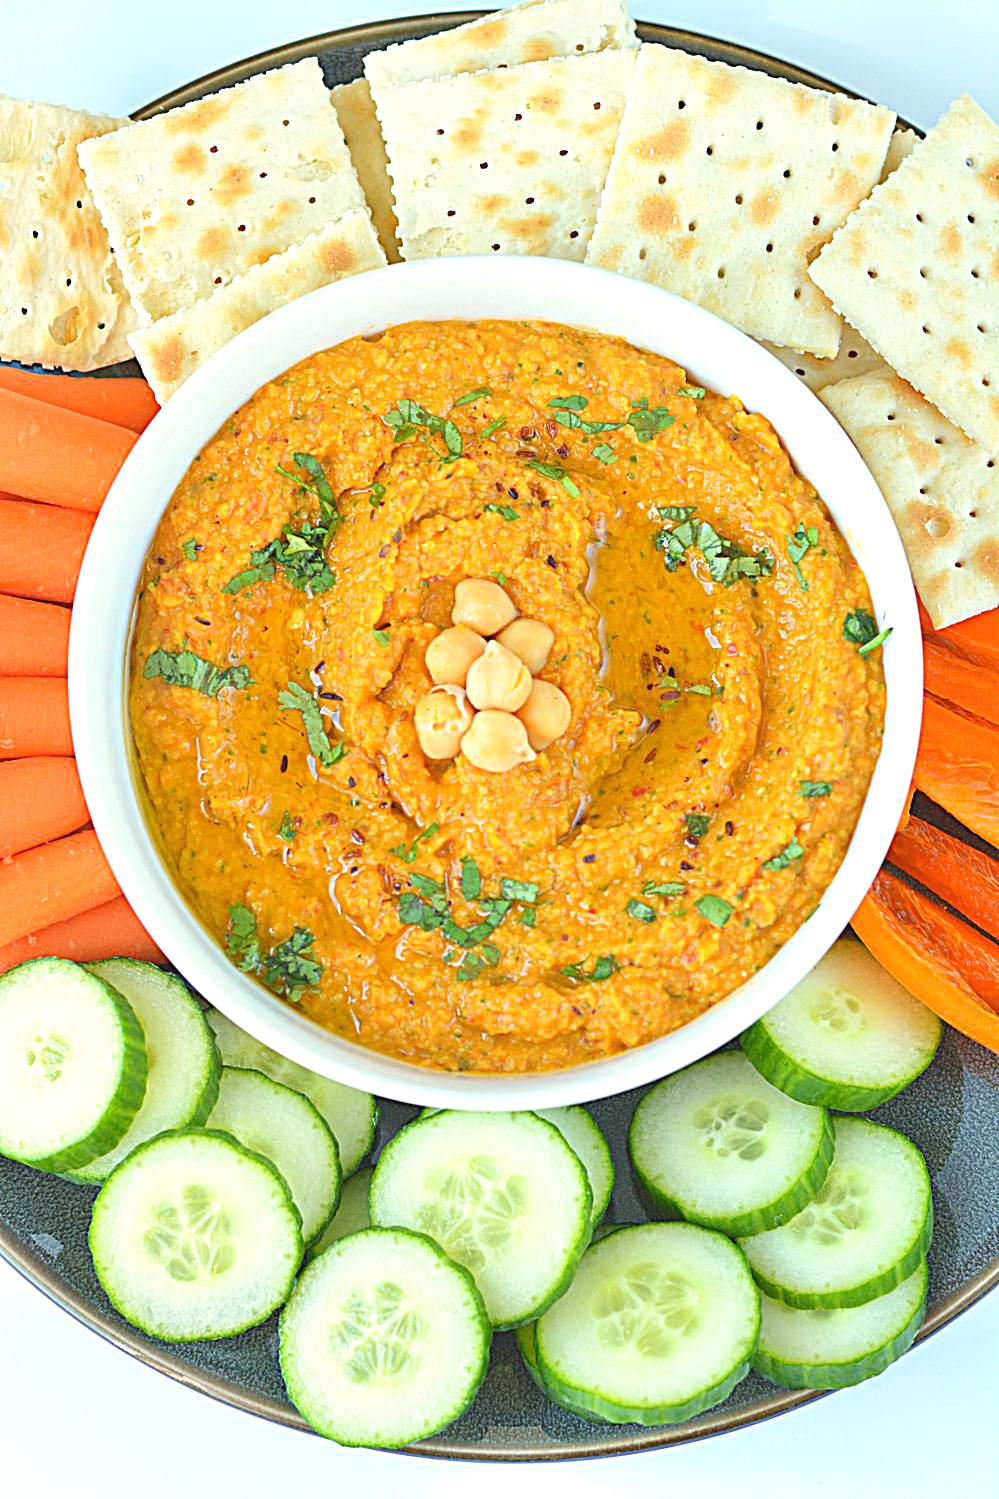 Homemade gluten-free and vegan hummus recipe that will surely be a hit ...